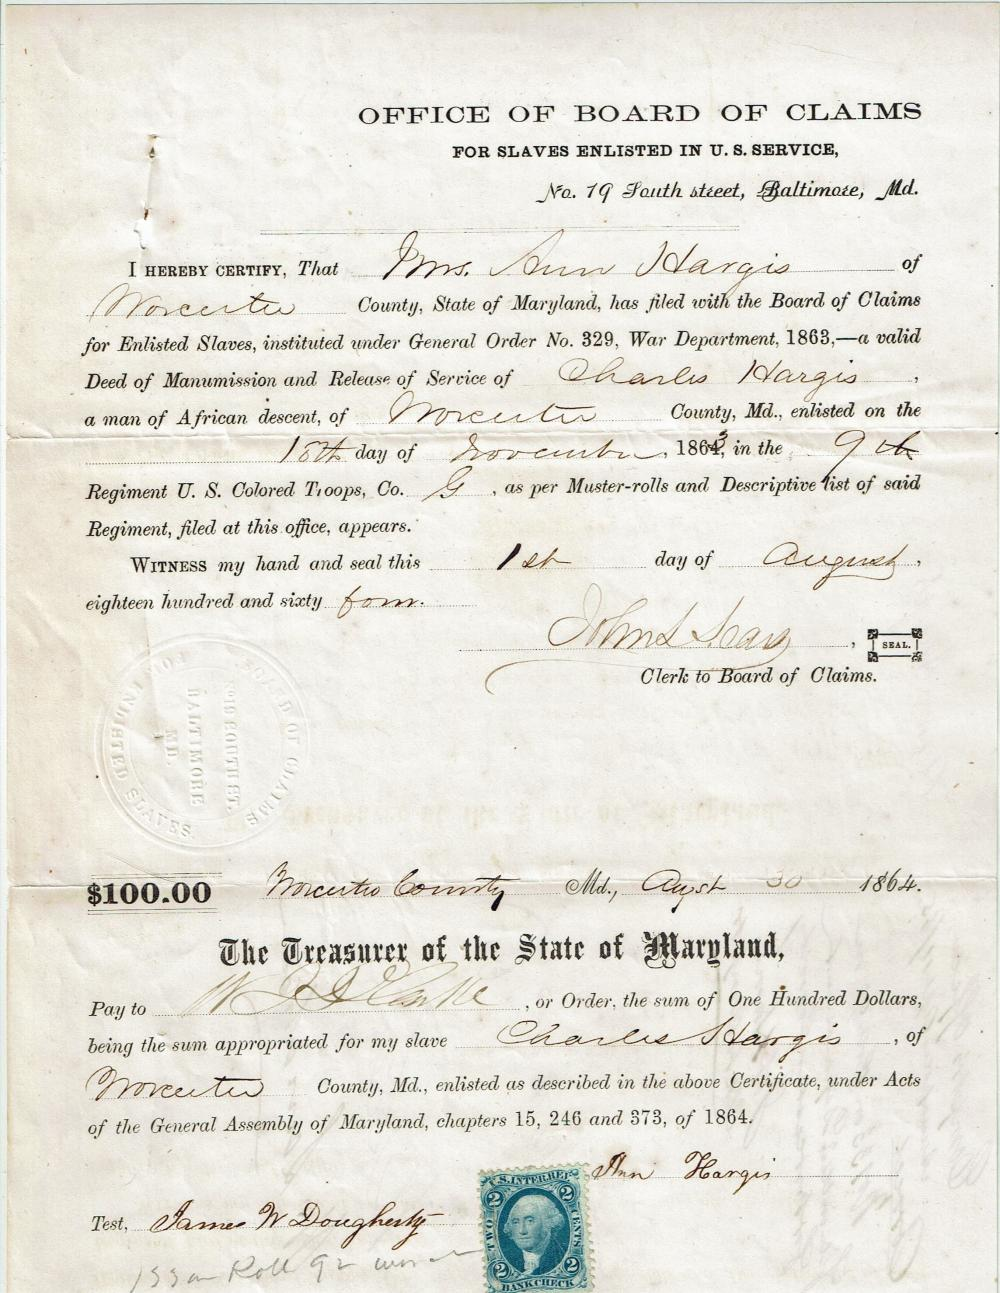 Slave Owner Receives Pay for his Slave Enlisted in the Union Army